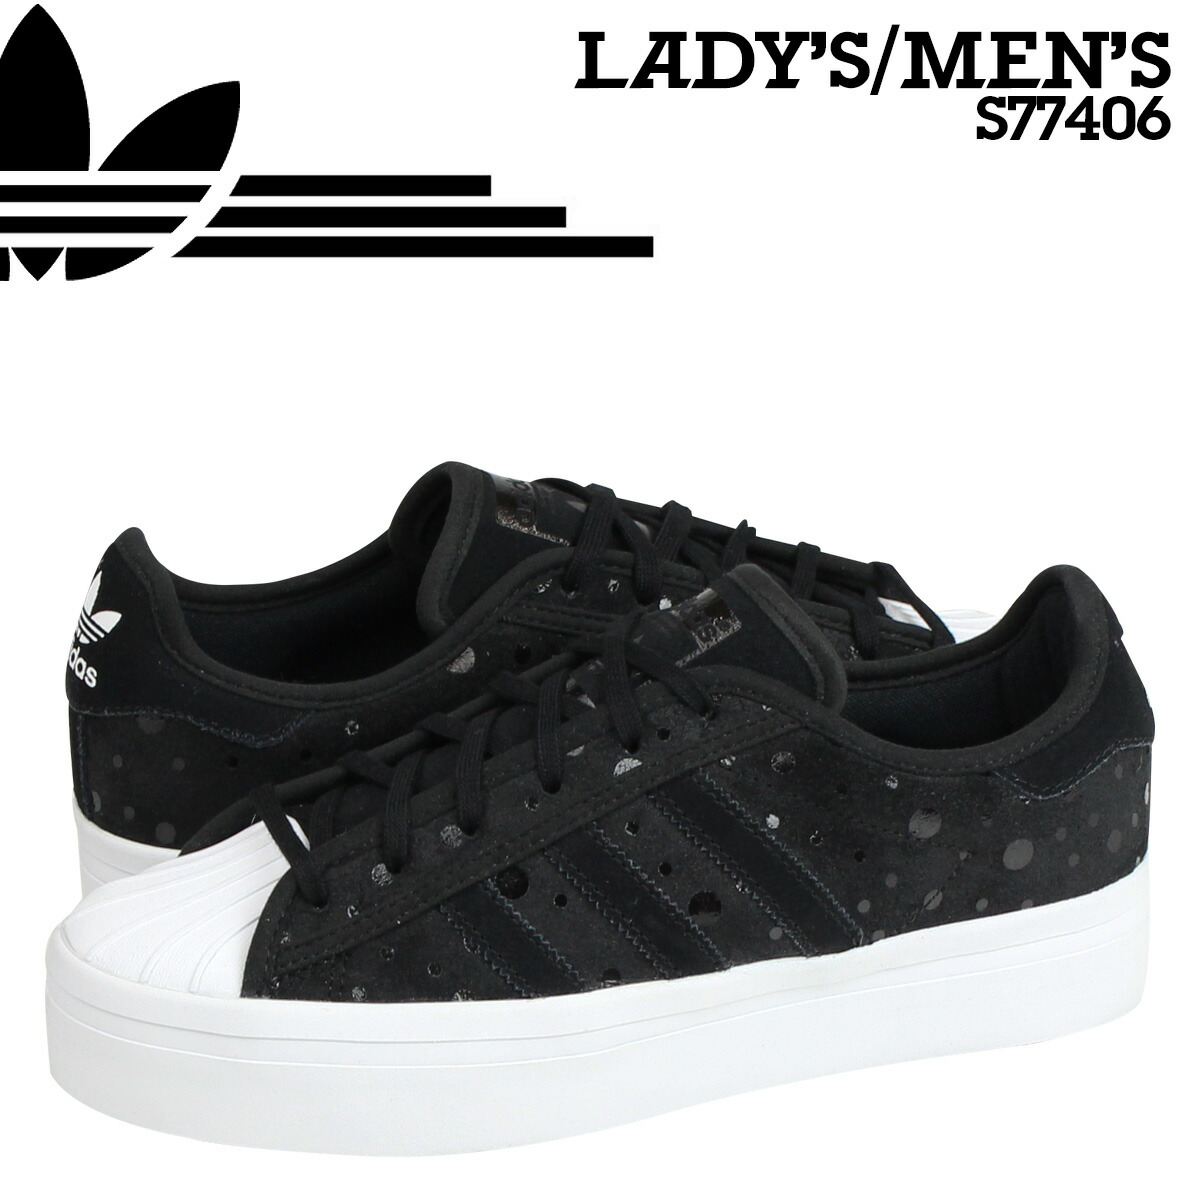 adidas superstar vulc adv black, adidas superstar black and grey